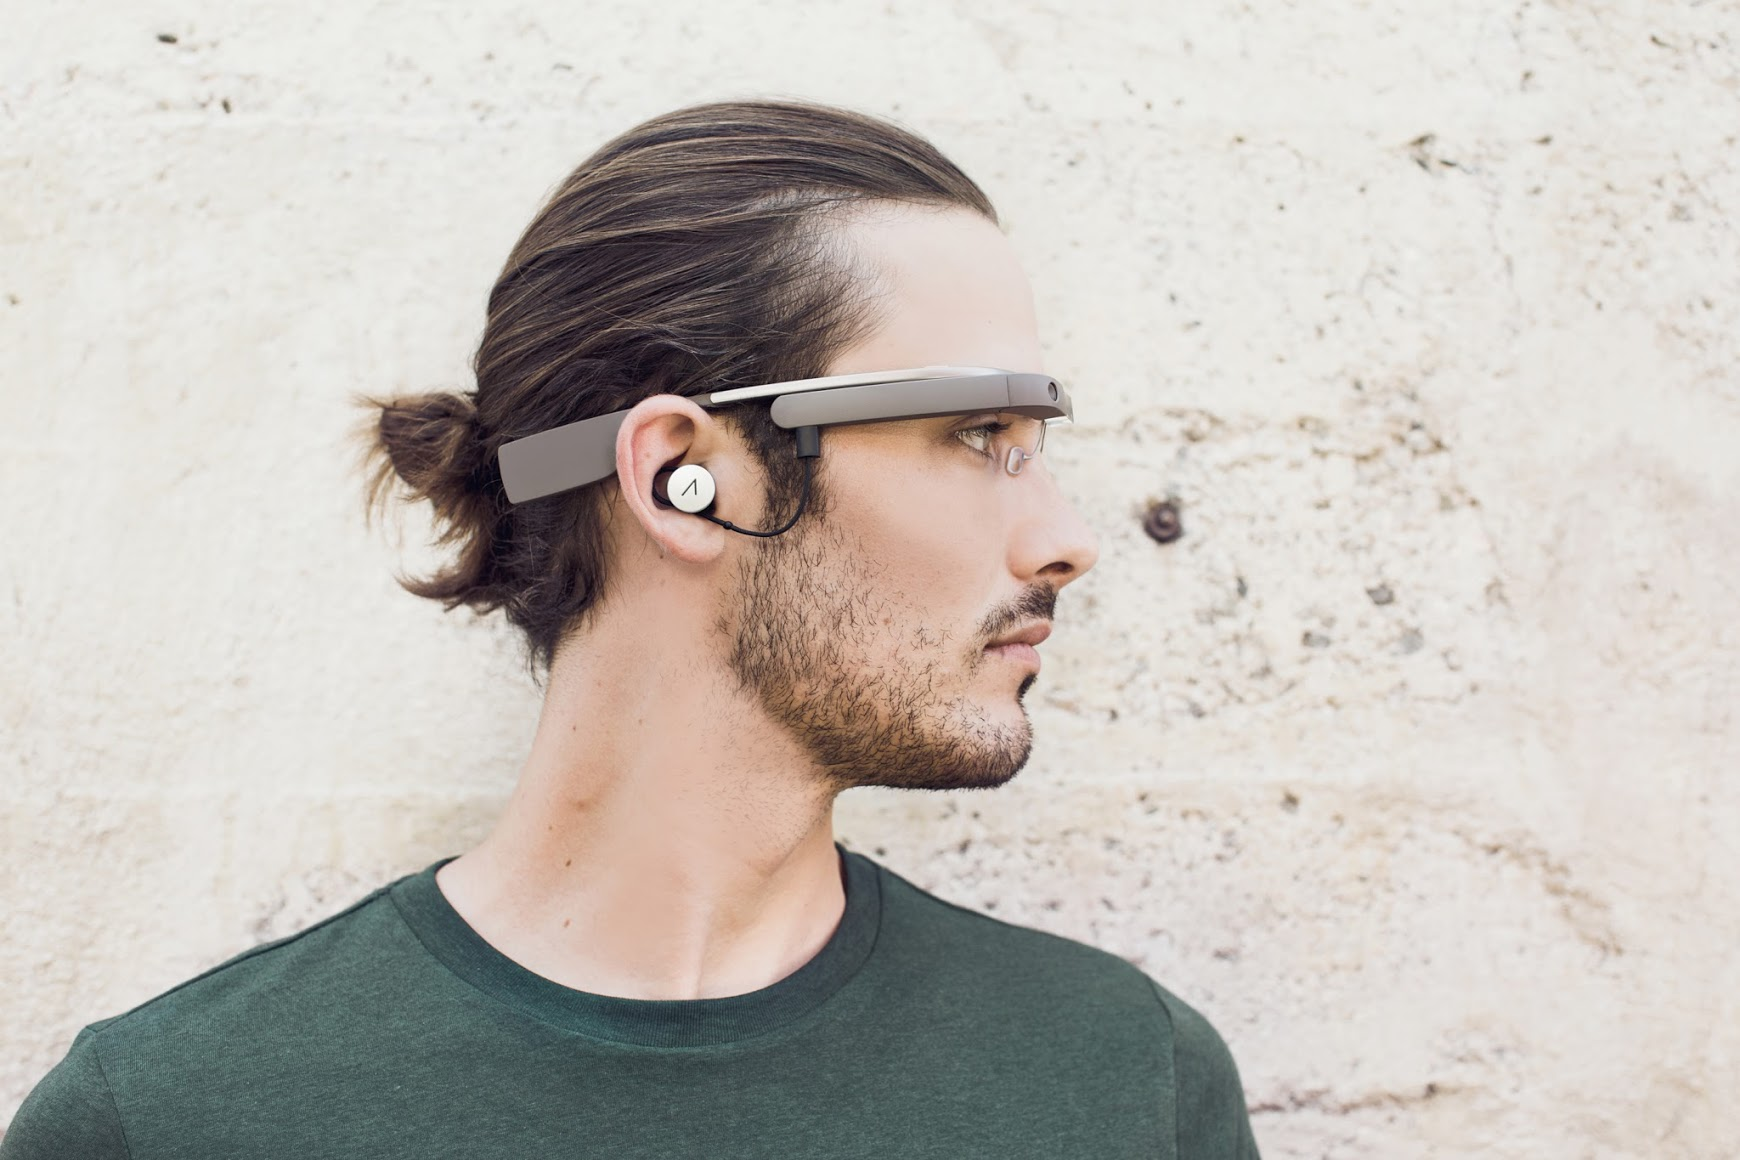 Google Glass to get music-related features including song search and streaming via Google Play